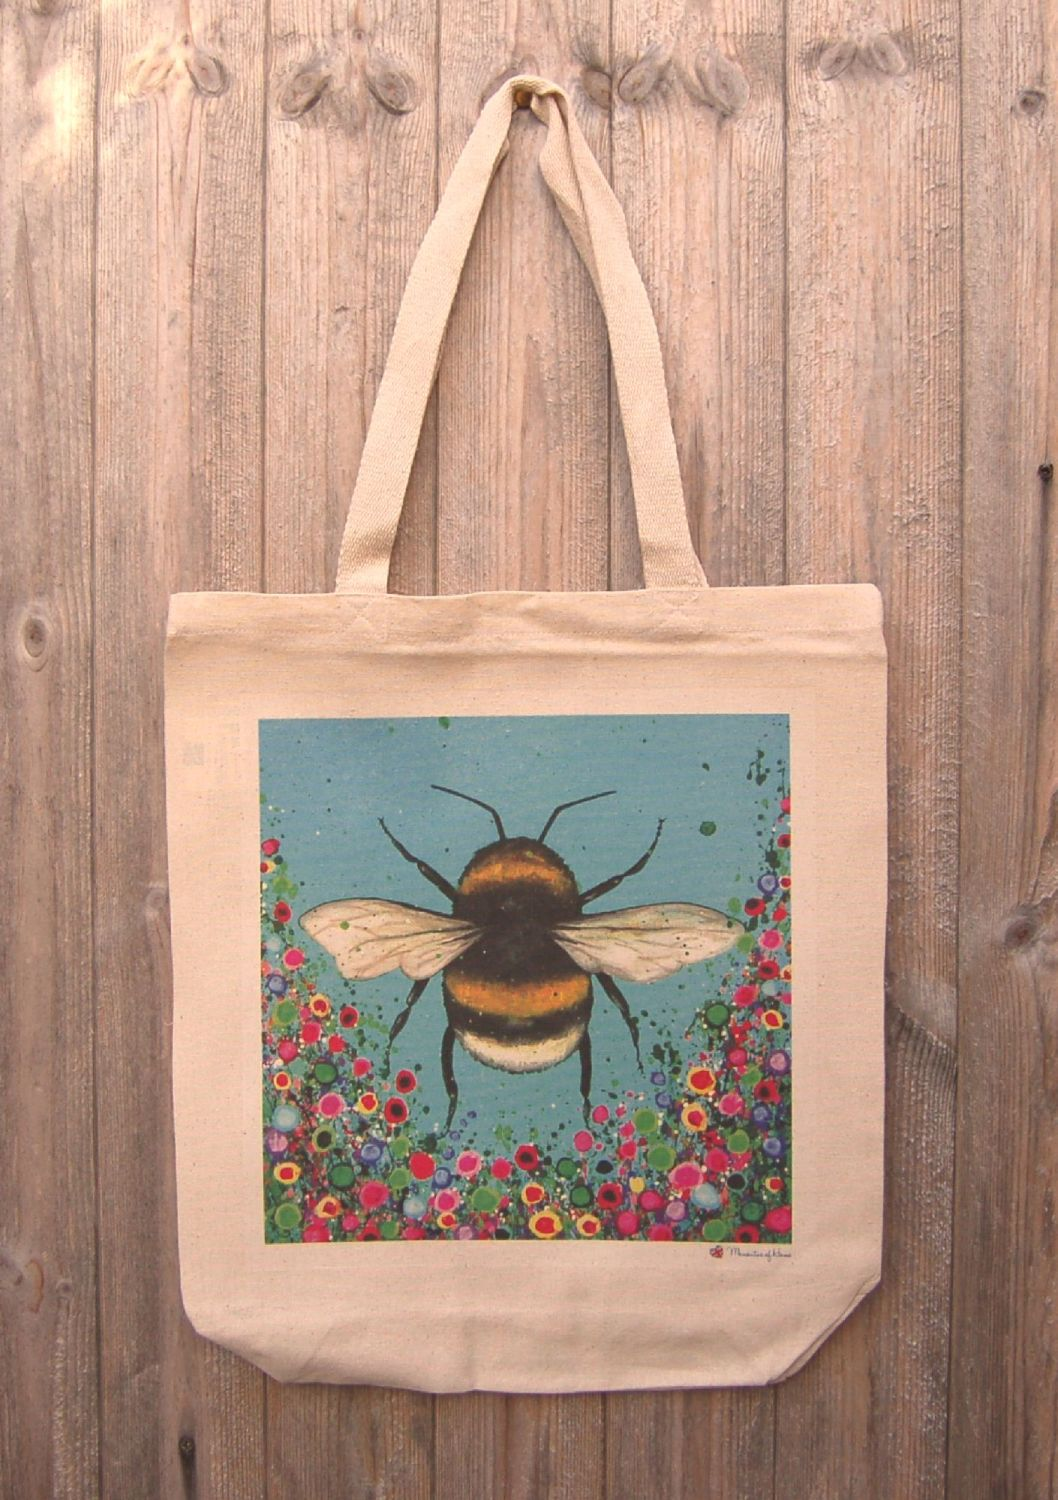 Jo Gough - Bumble Bee with flowers Tote Bag